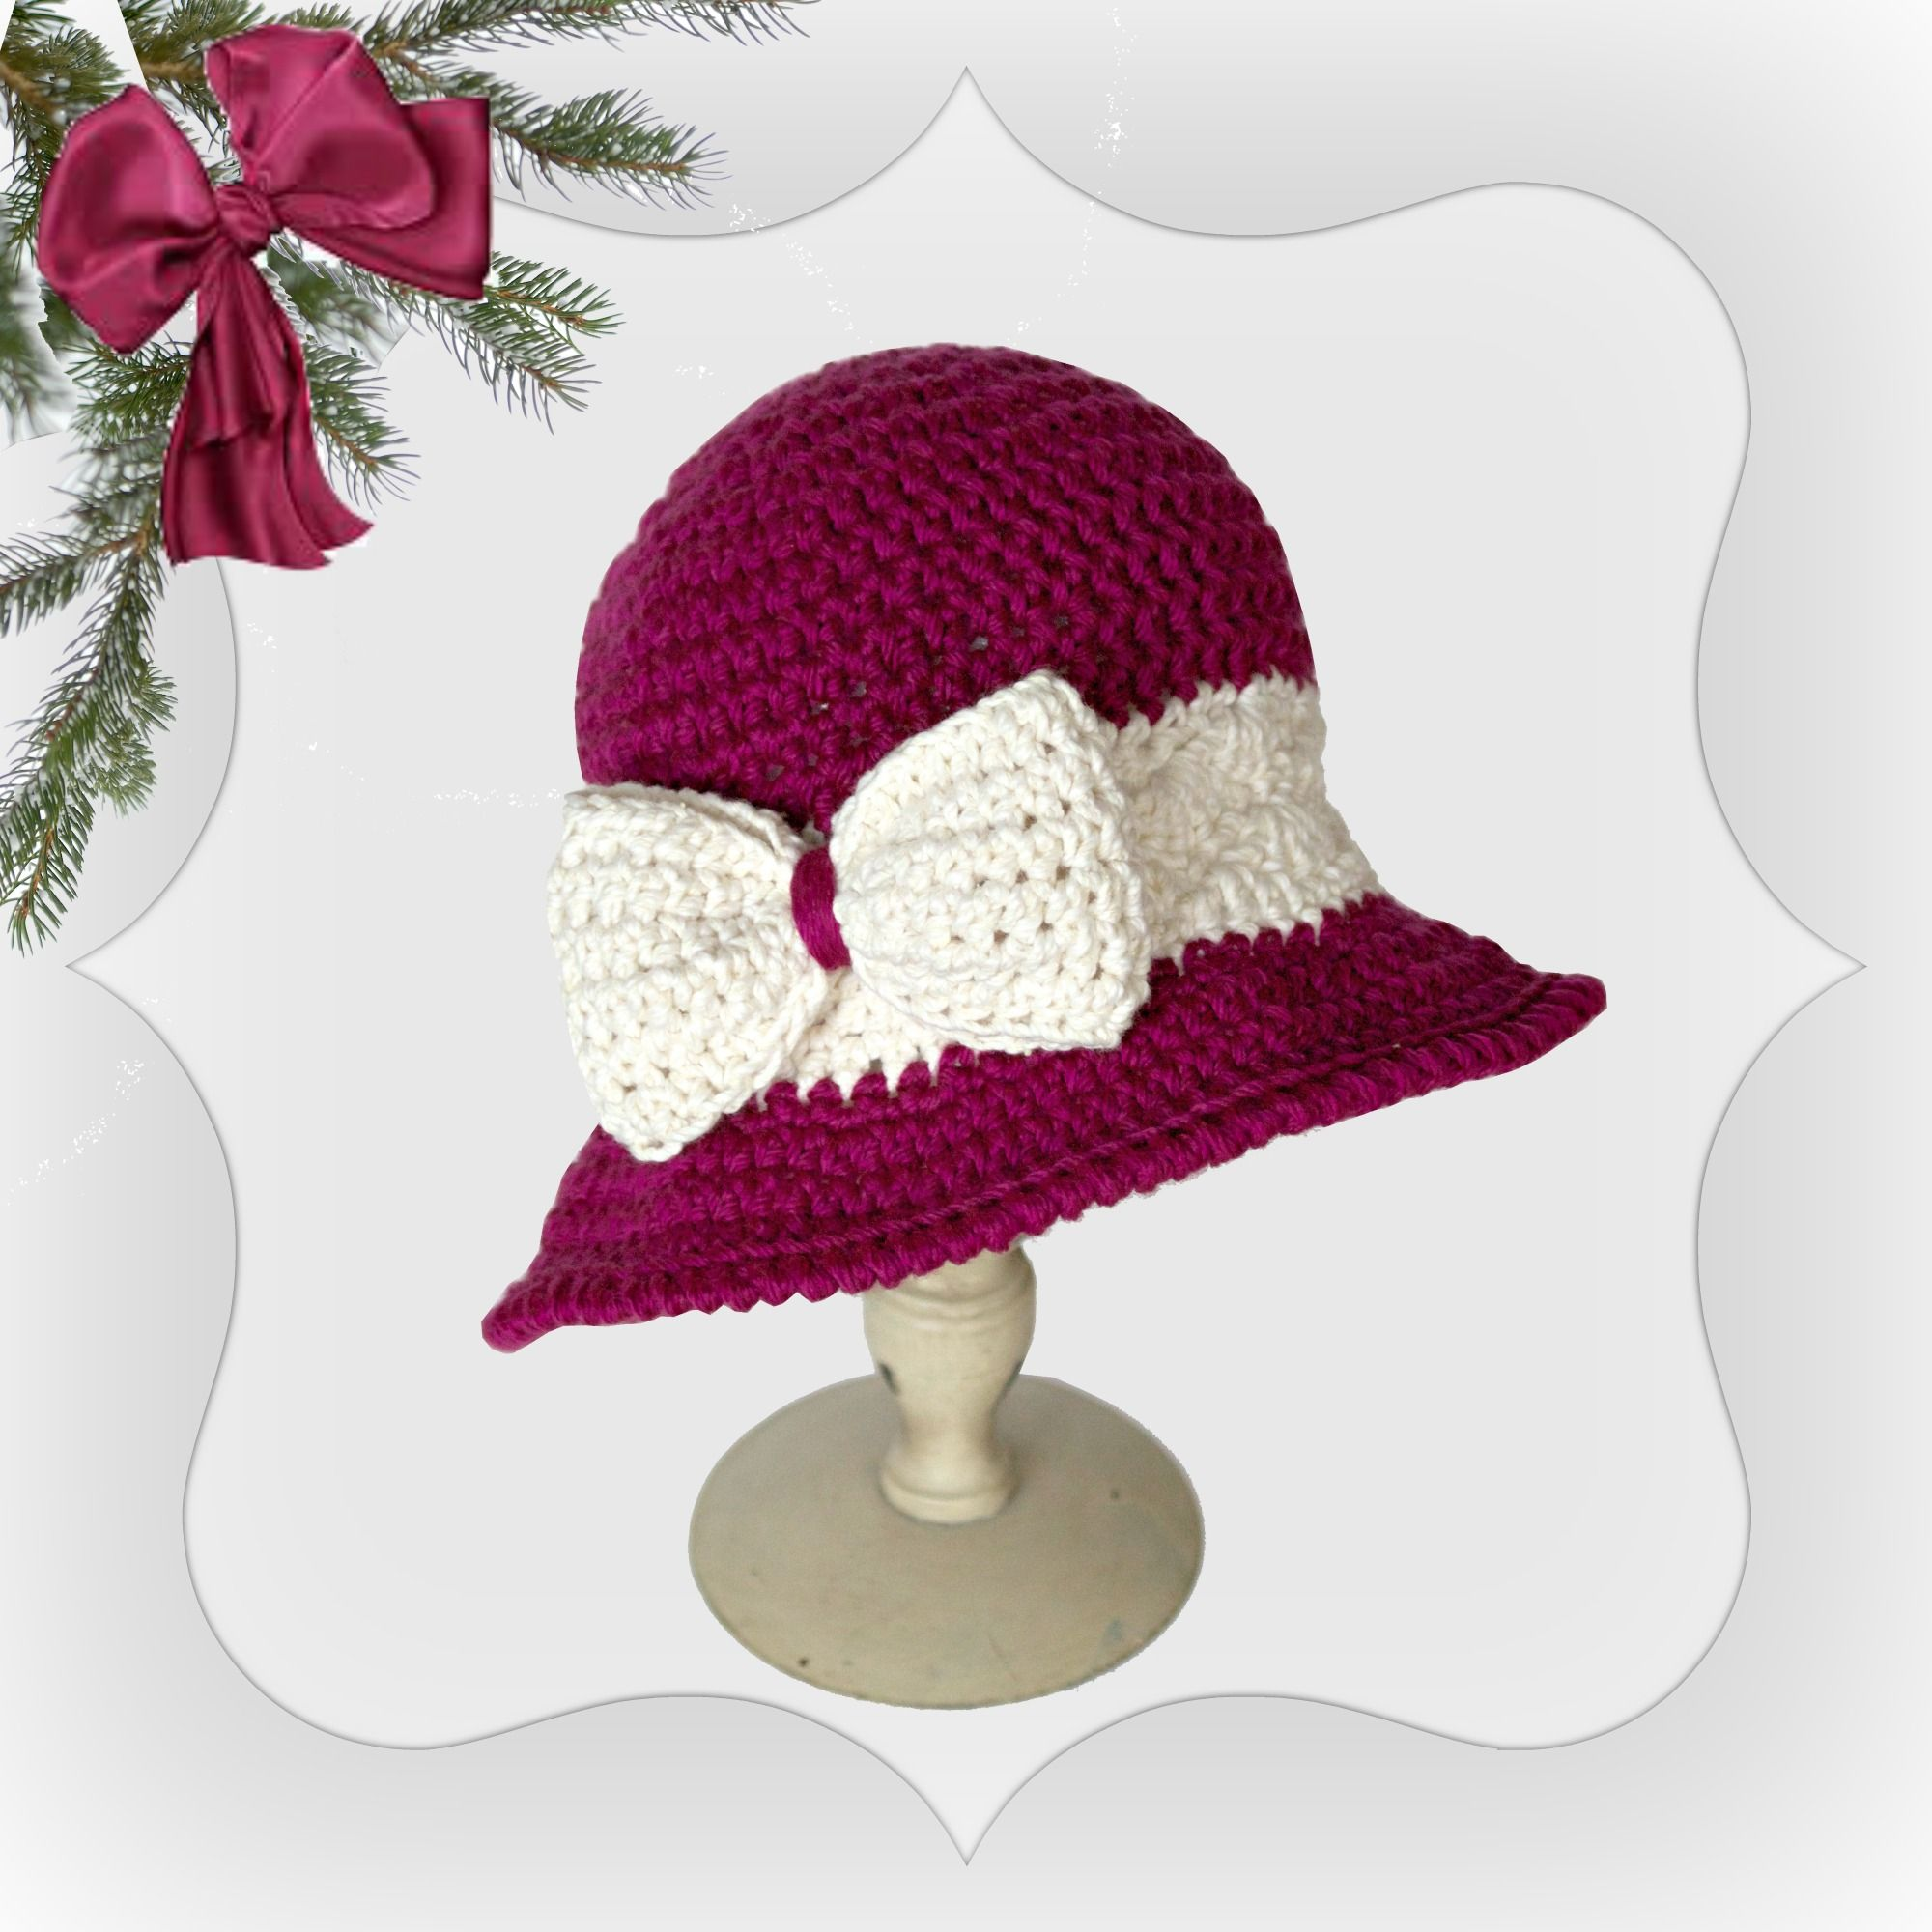 free crochet pattern for hat christmas joy | Crochet hats ...